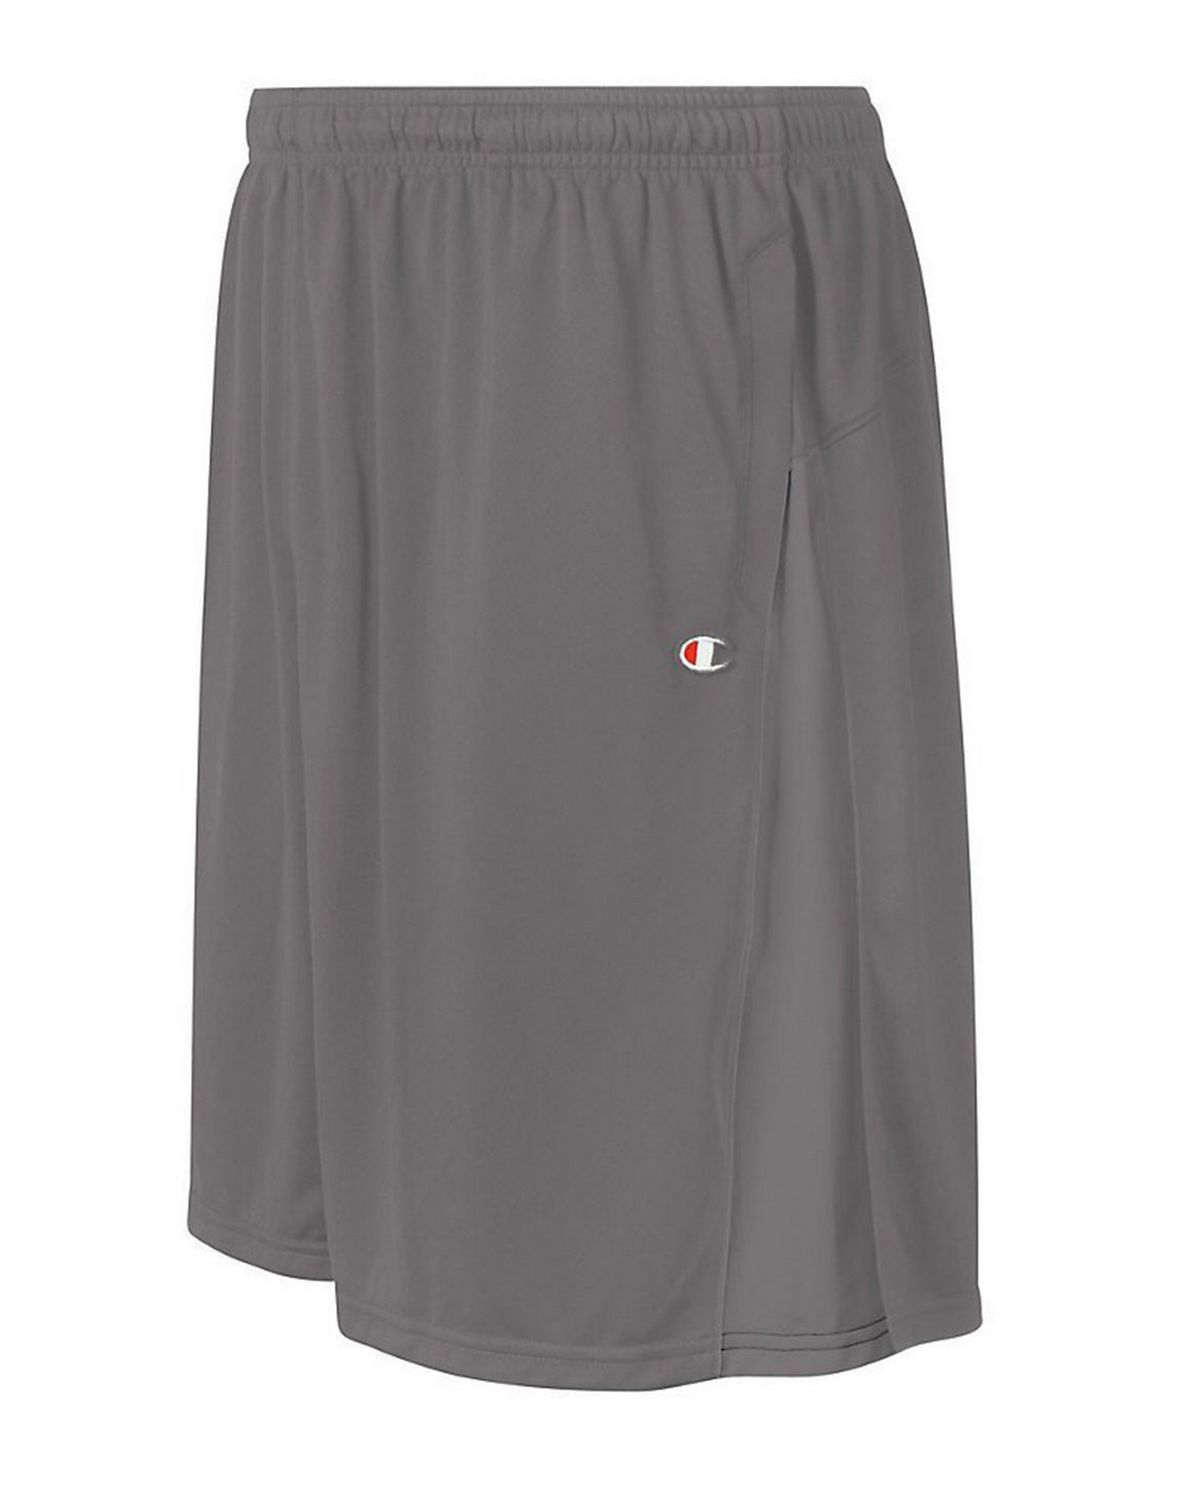 Champion 8508 Mens Double Dry Short - Stone Grey - L 8508